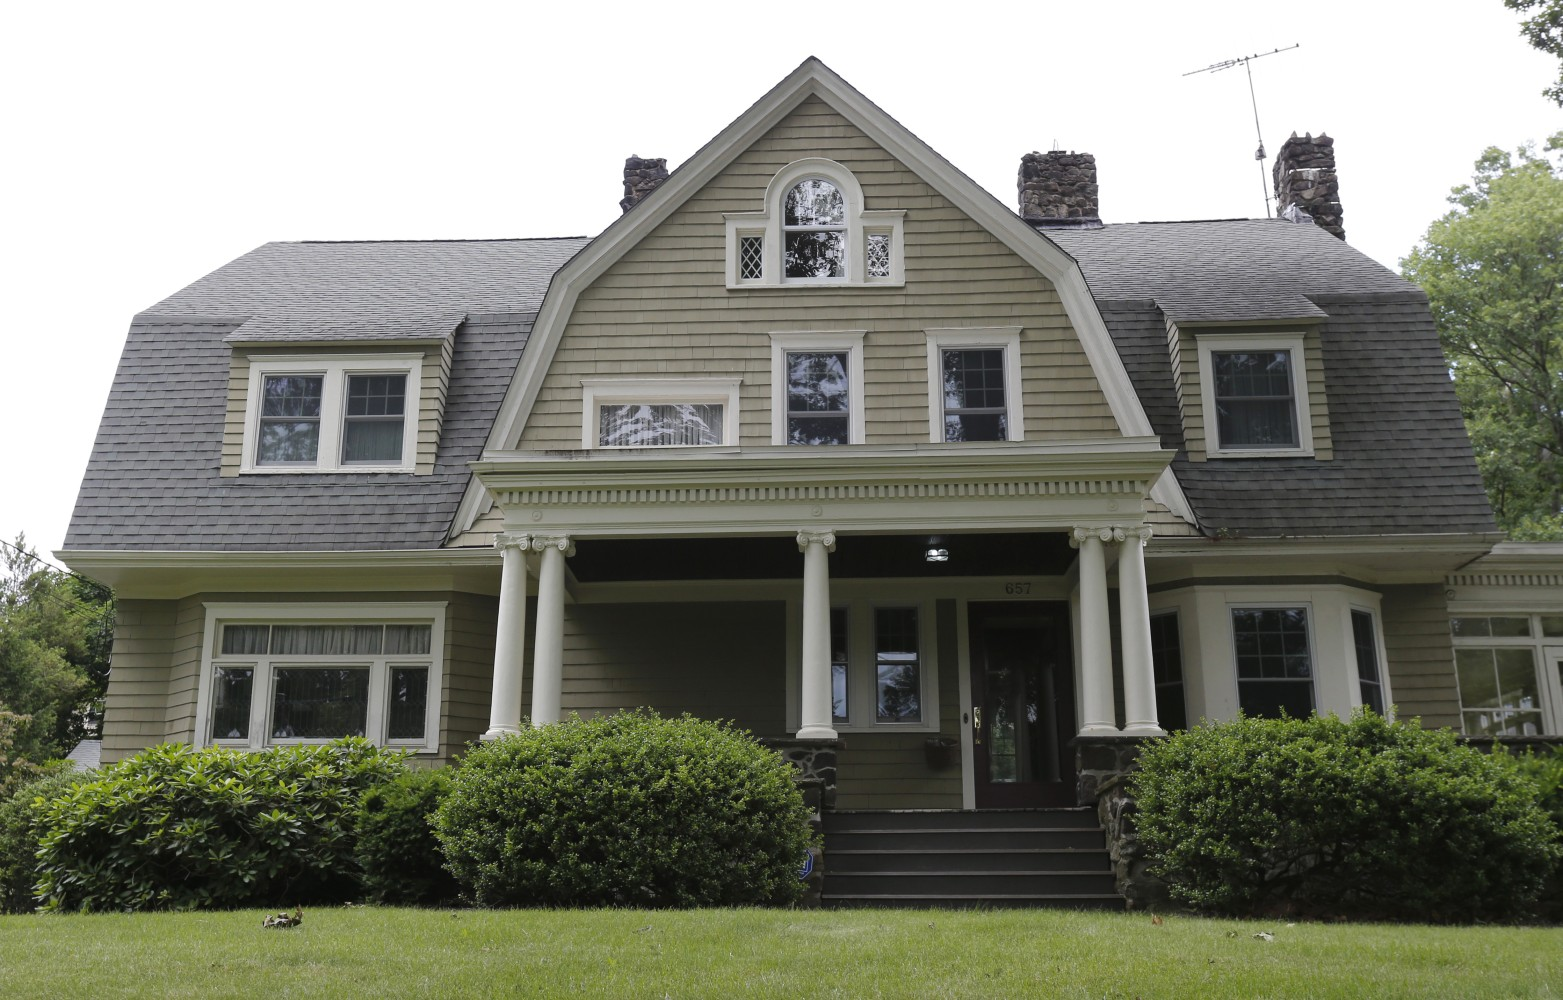 westfield new jersey house with alleged 39 watcher 39 back